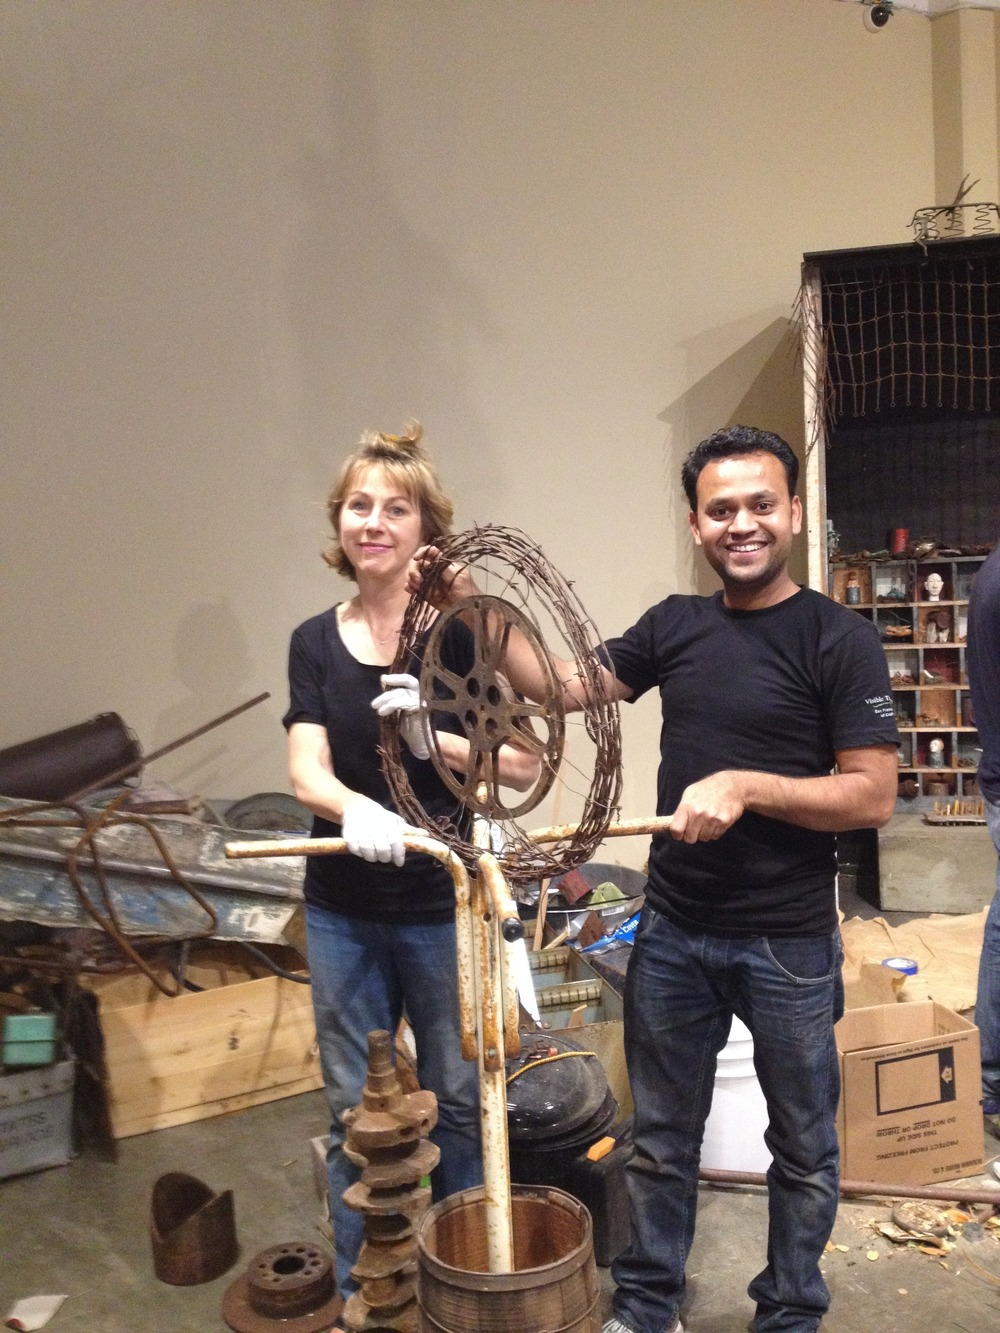 MaryLee and Suhas having good times with junk!